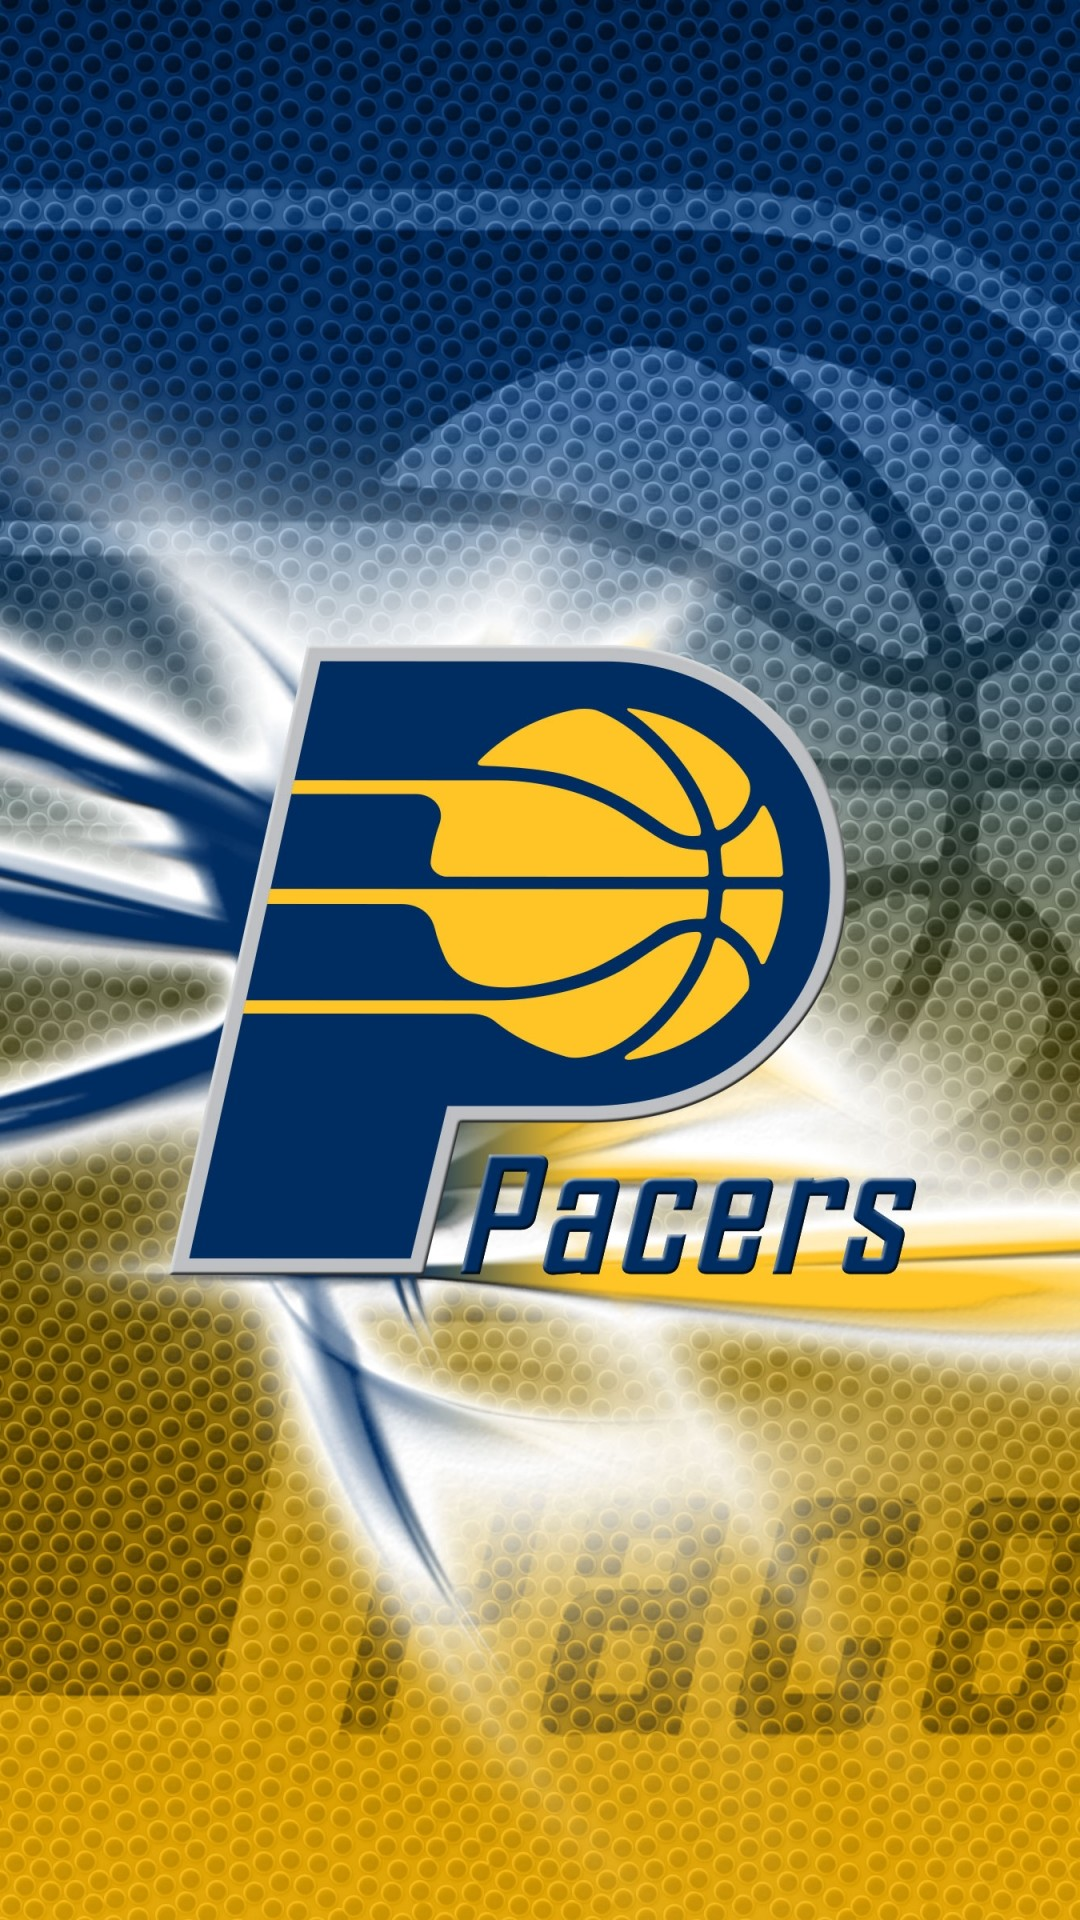 1080x1920 Indiana Pacers Wallpaper